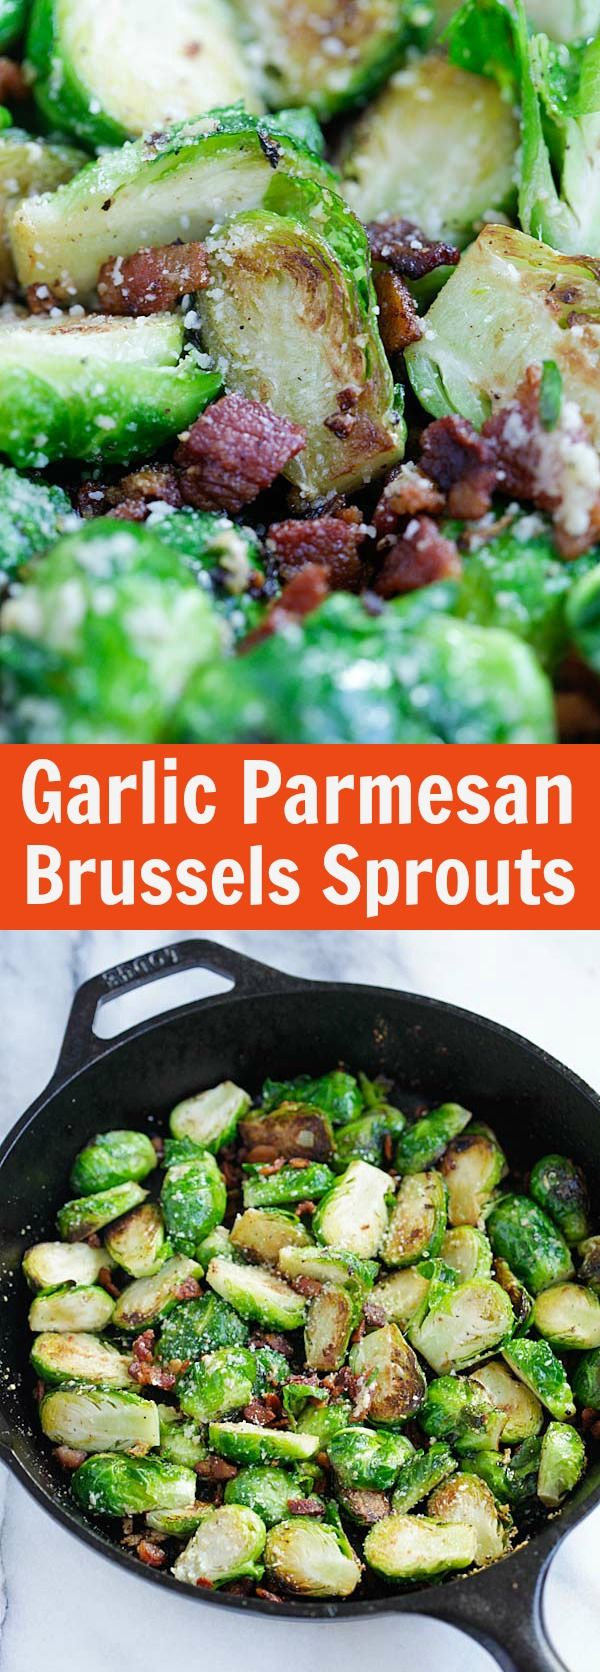 Garlic Parmesan and Bacon Brussels Sprouts – skillet roasted Brussels sprouts with garlic, Parmesan cheese and bacon. Sinfully good | rasamalaysia.com